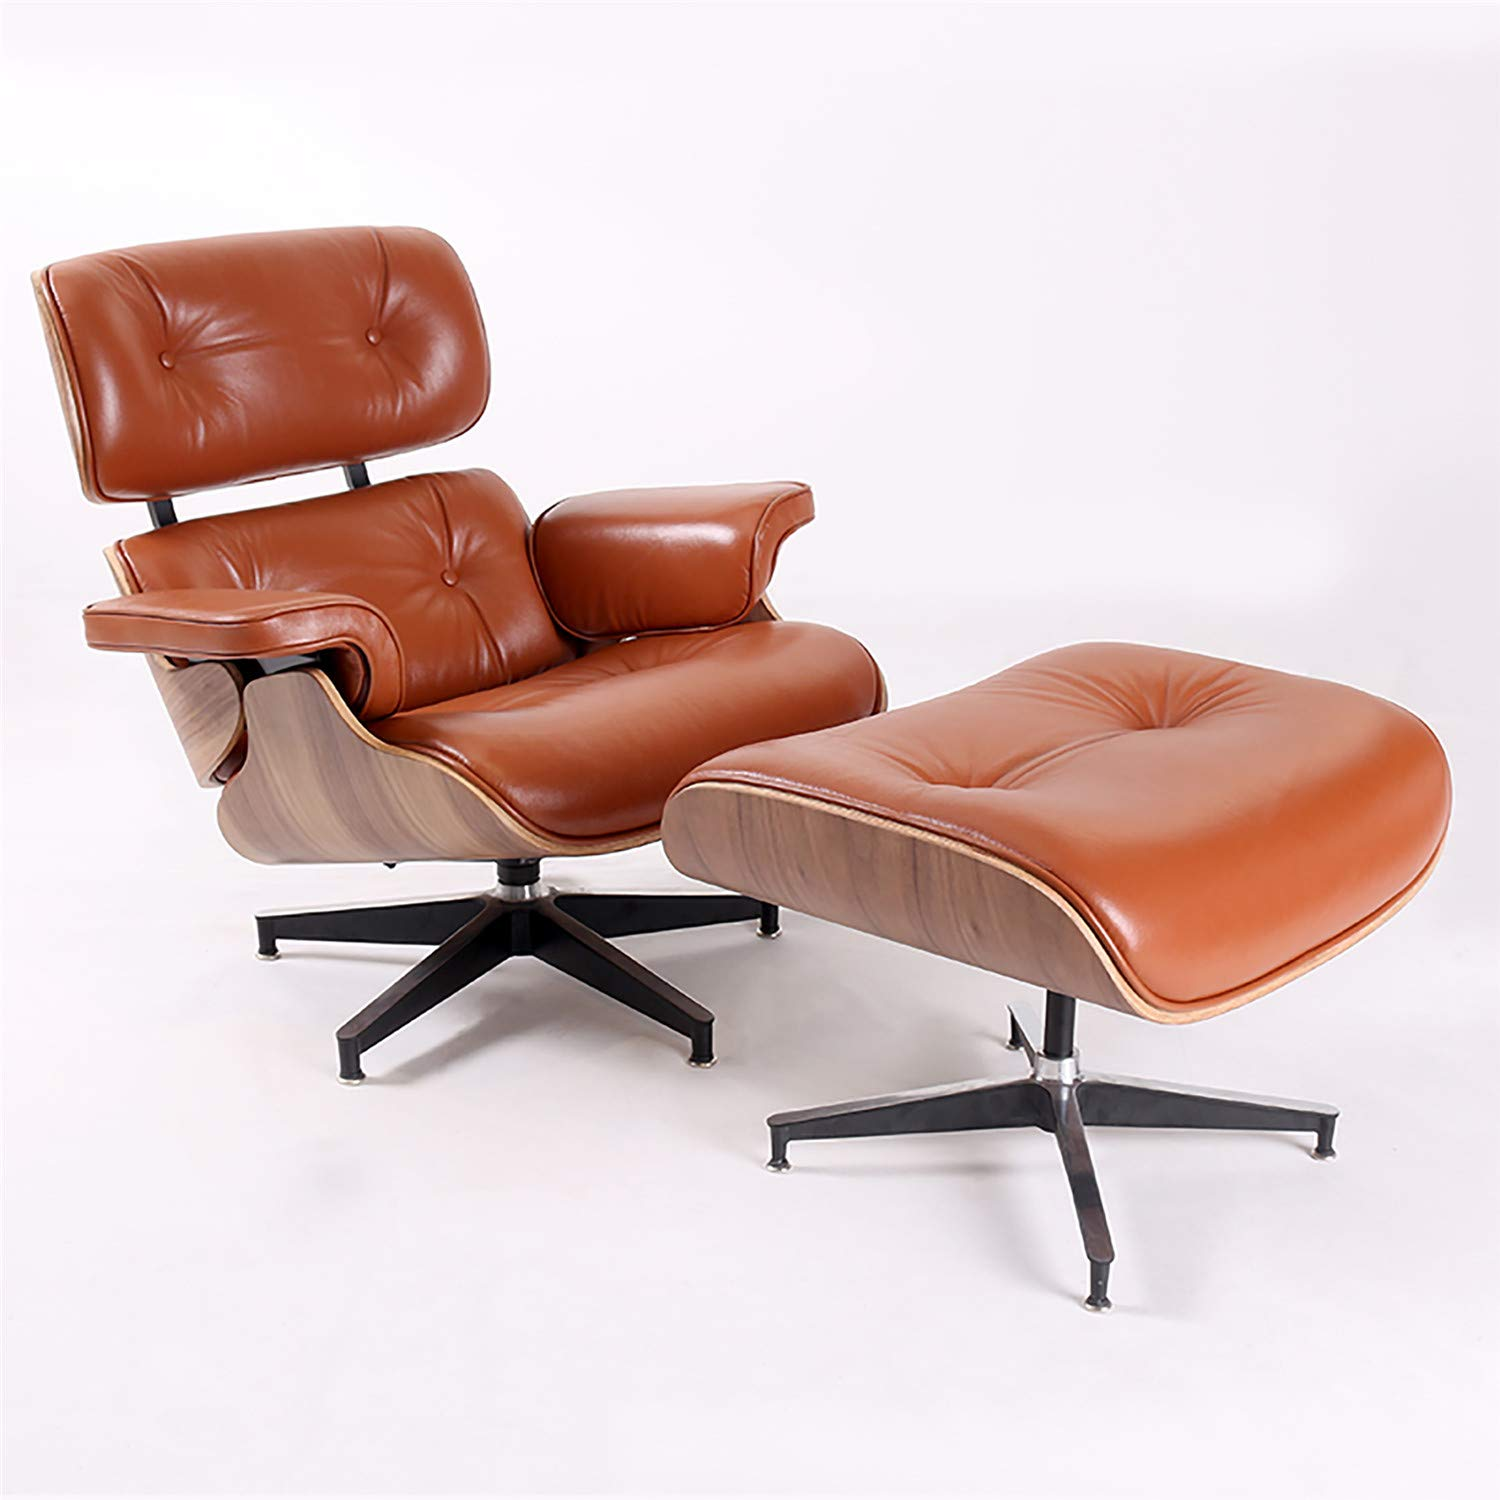 Mid Century Modern Lounge Chair with Ottoman, Eames Recliner Chair with  10% Natural Leather, Plywood Swivel Chair for Living Room (Tan Walnut)